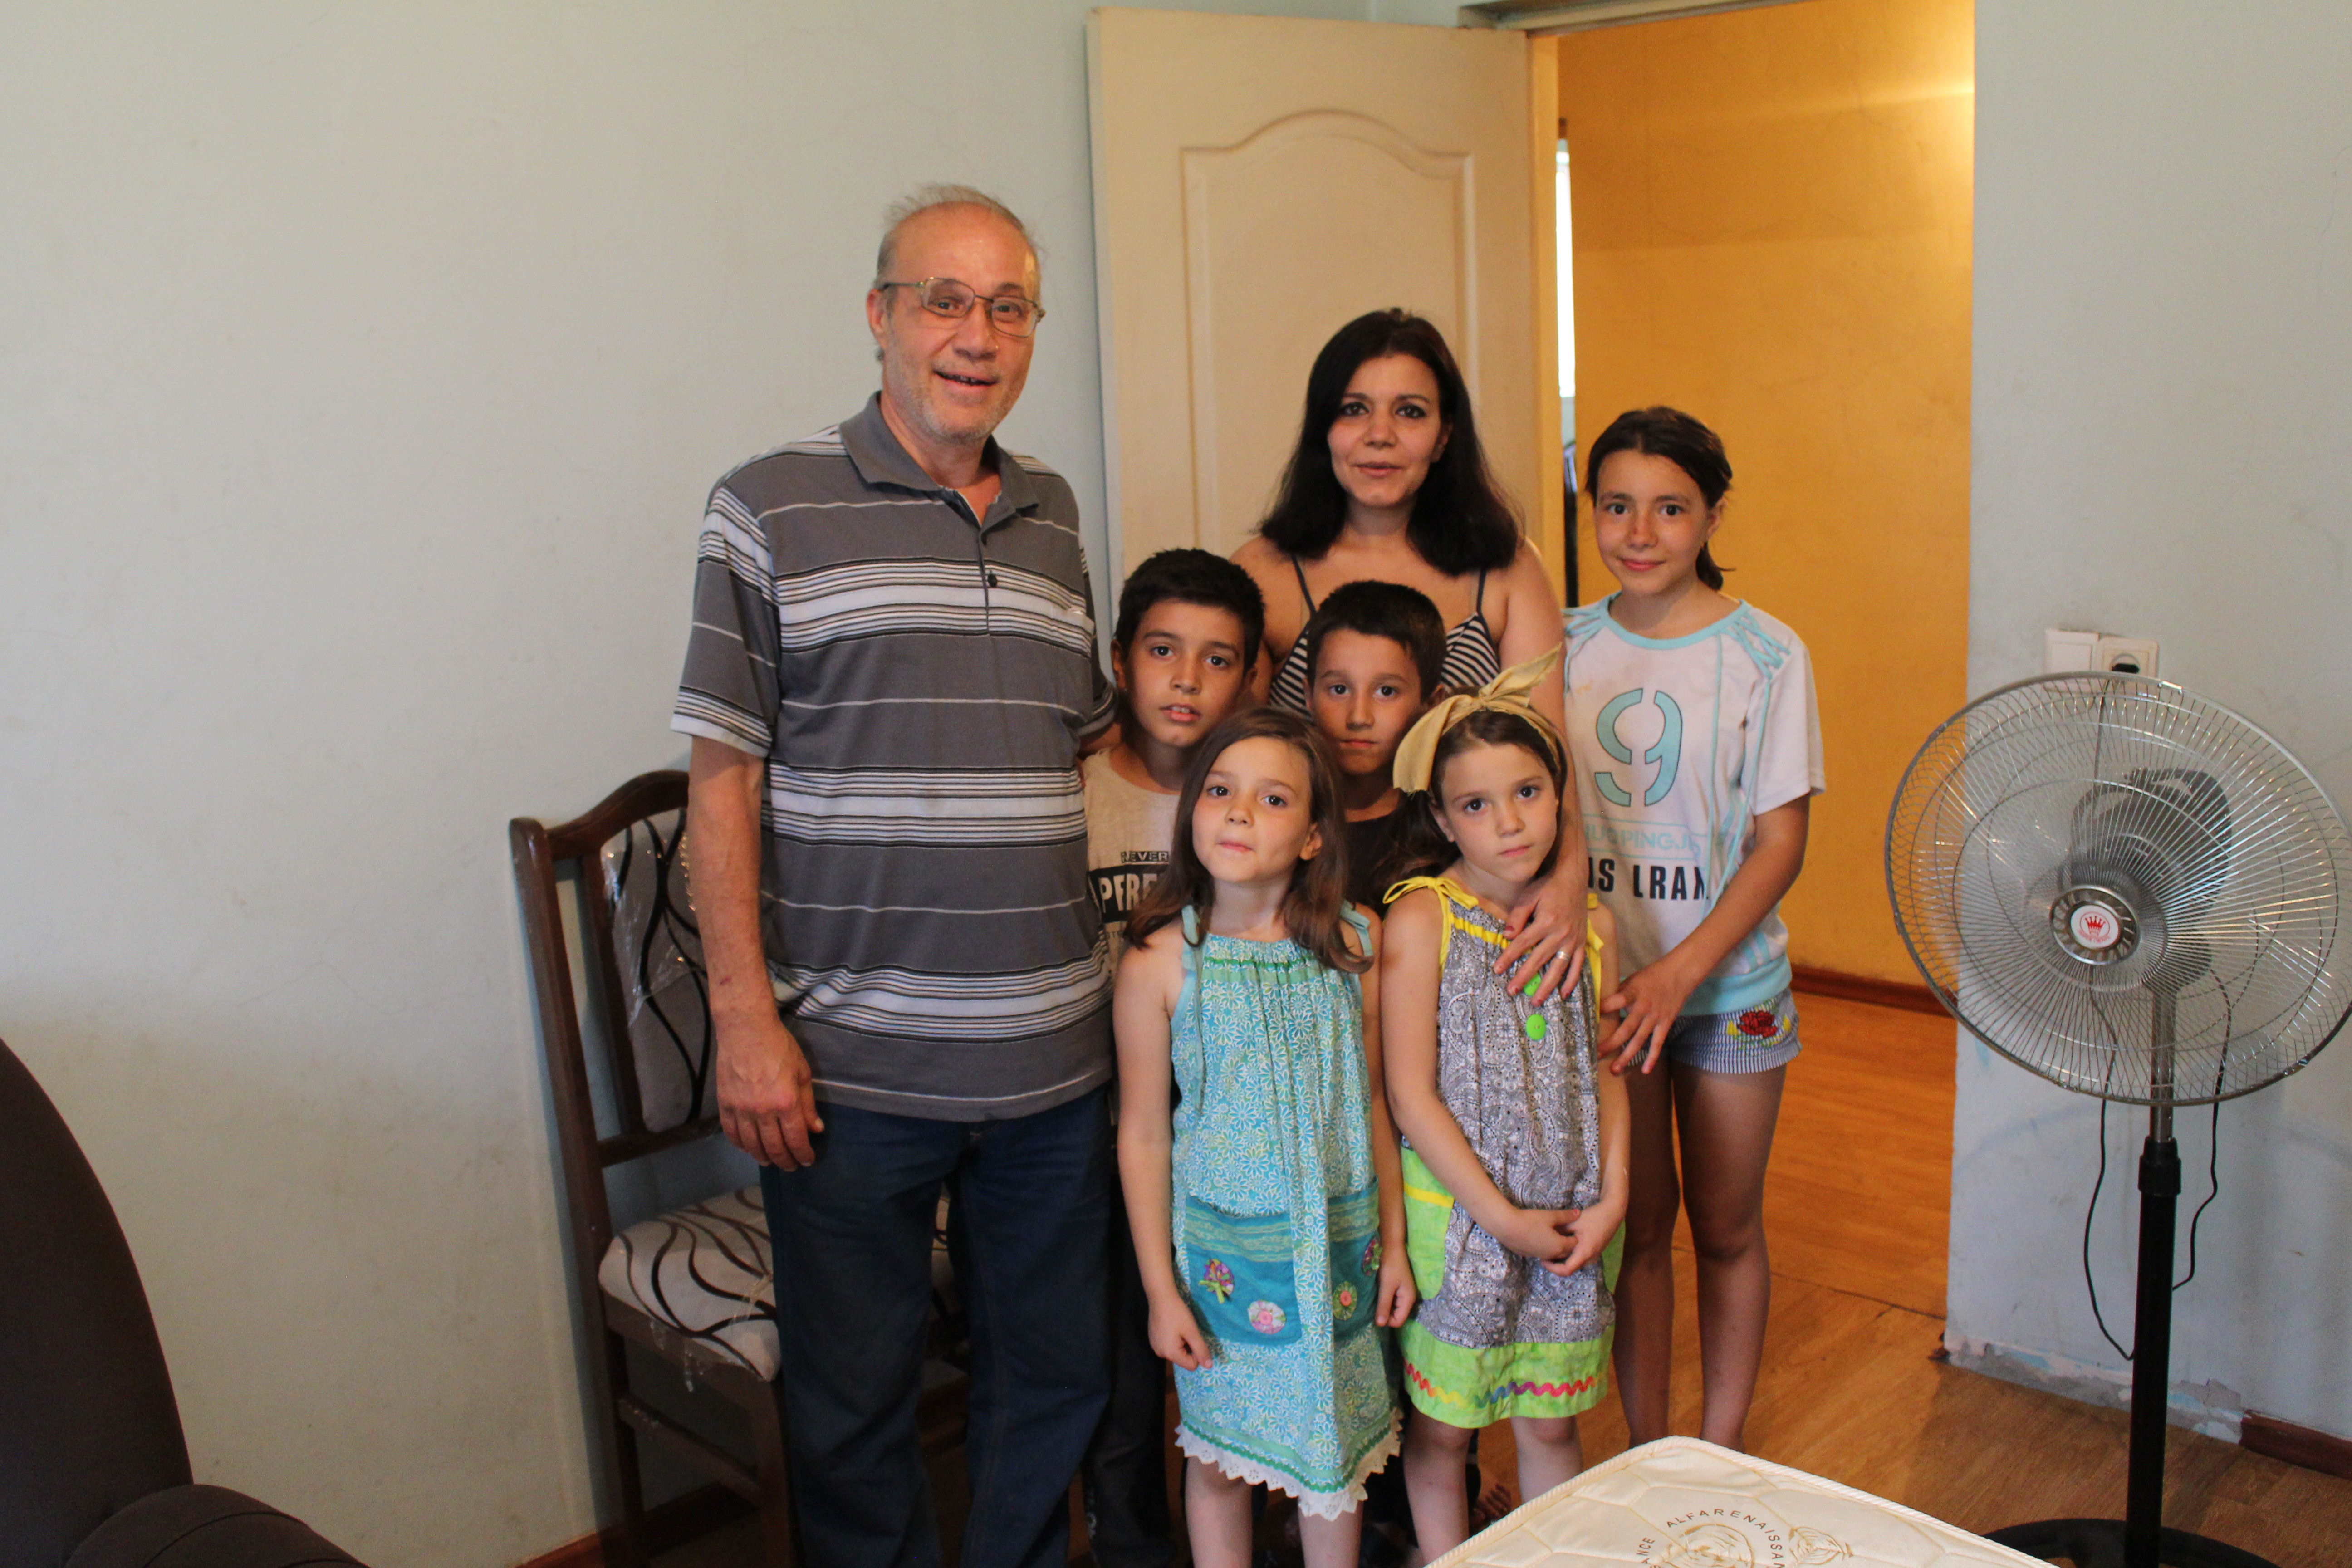 URGENT: House for a Syrian-Armenian Family